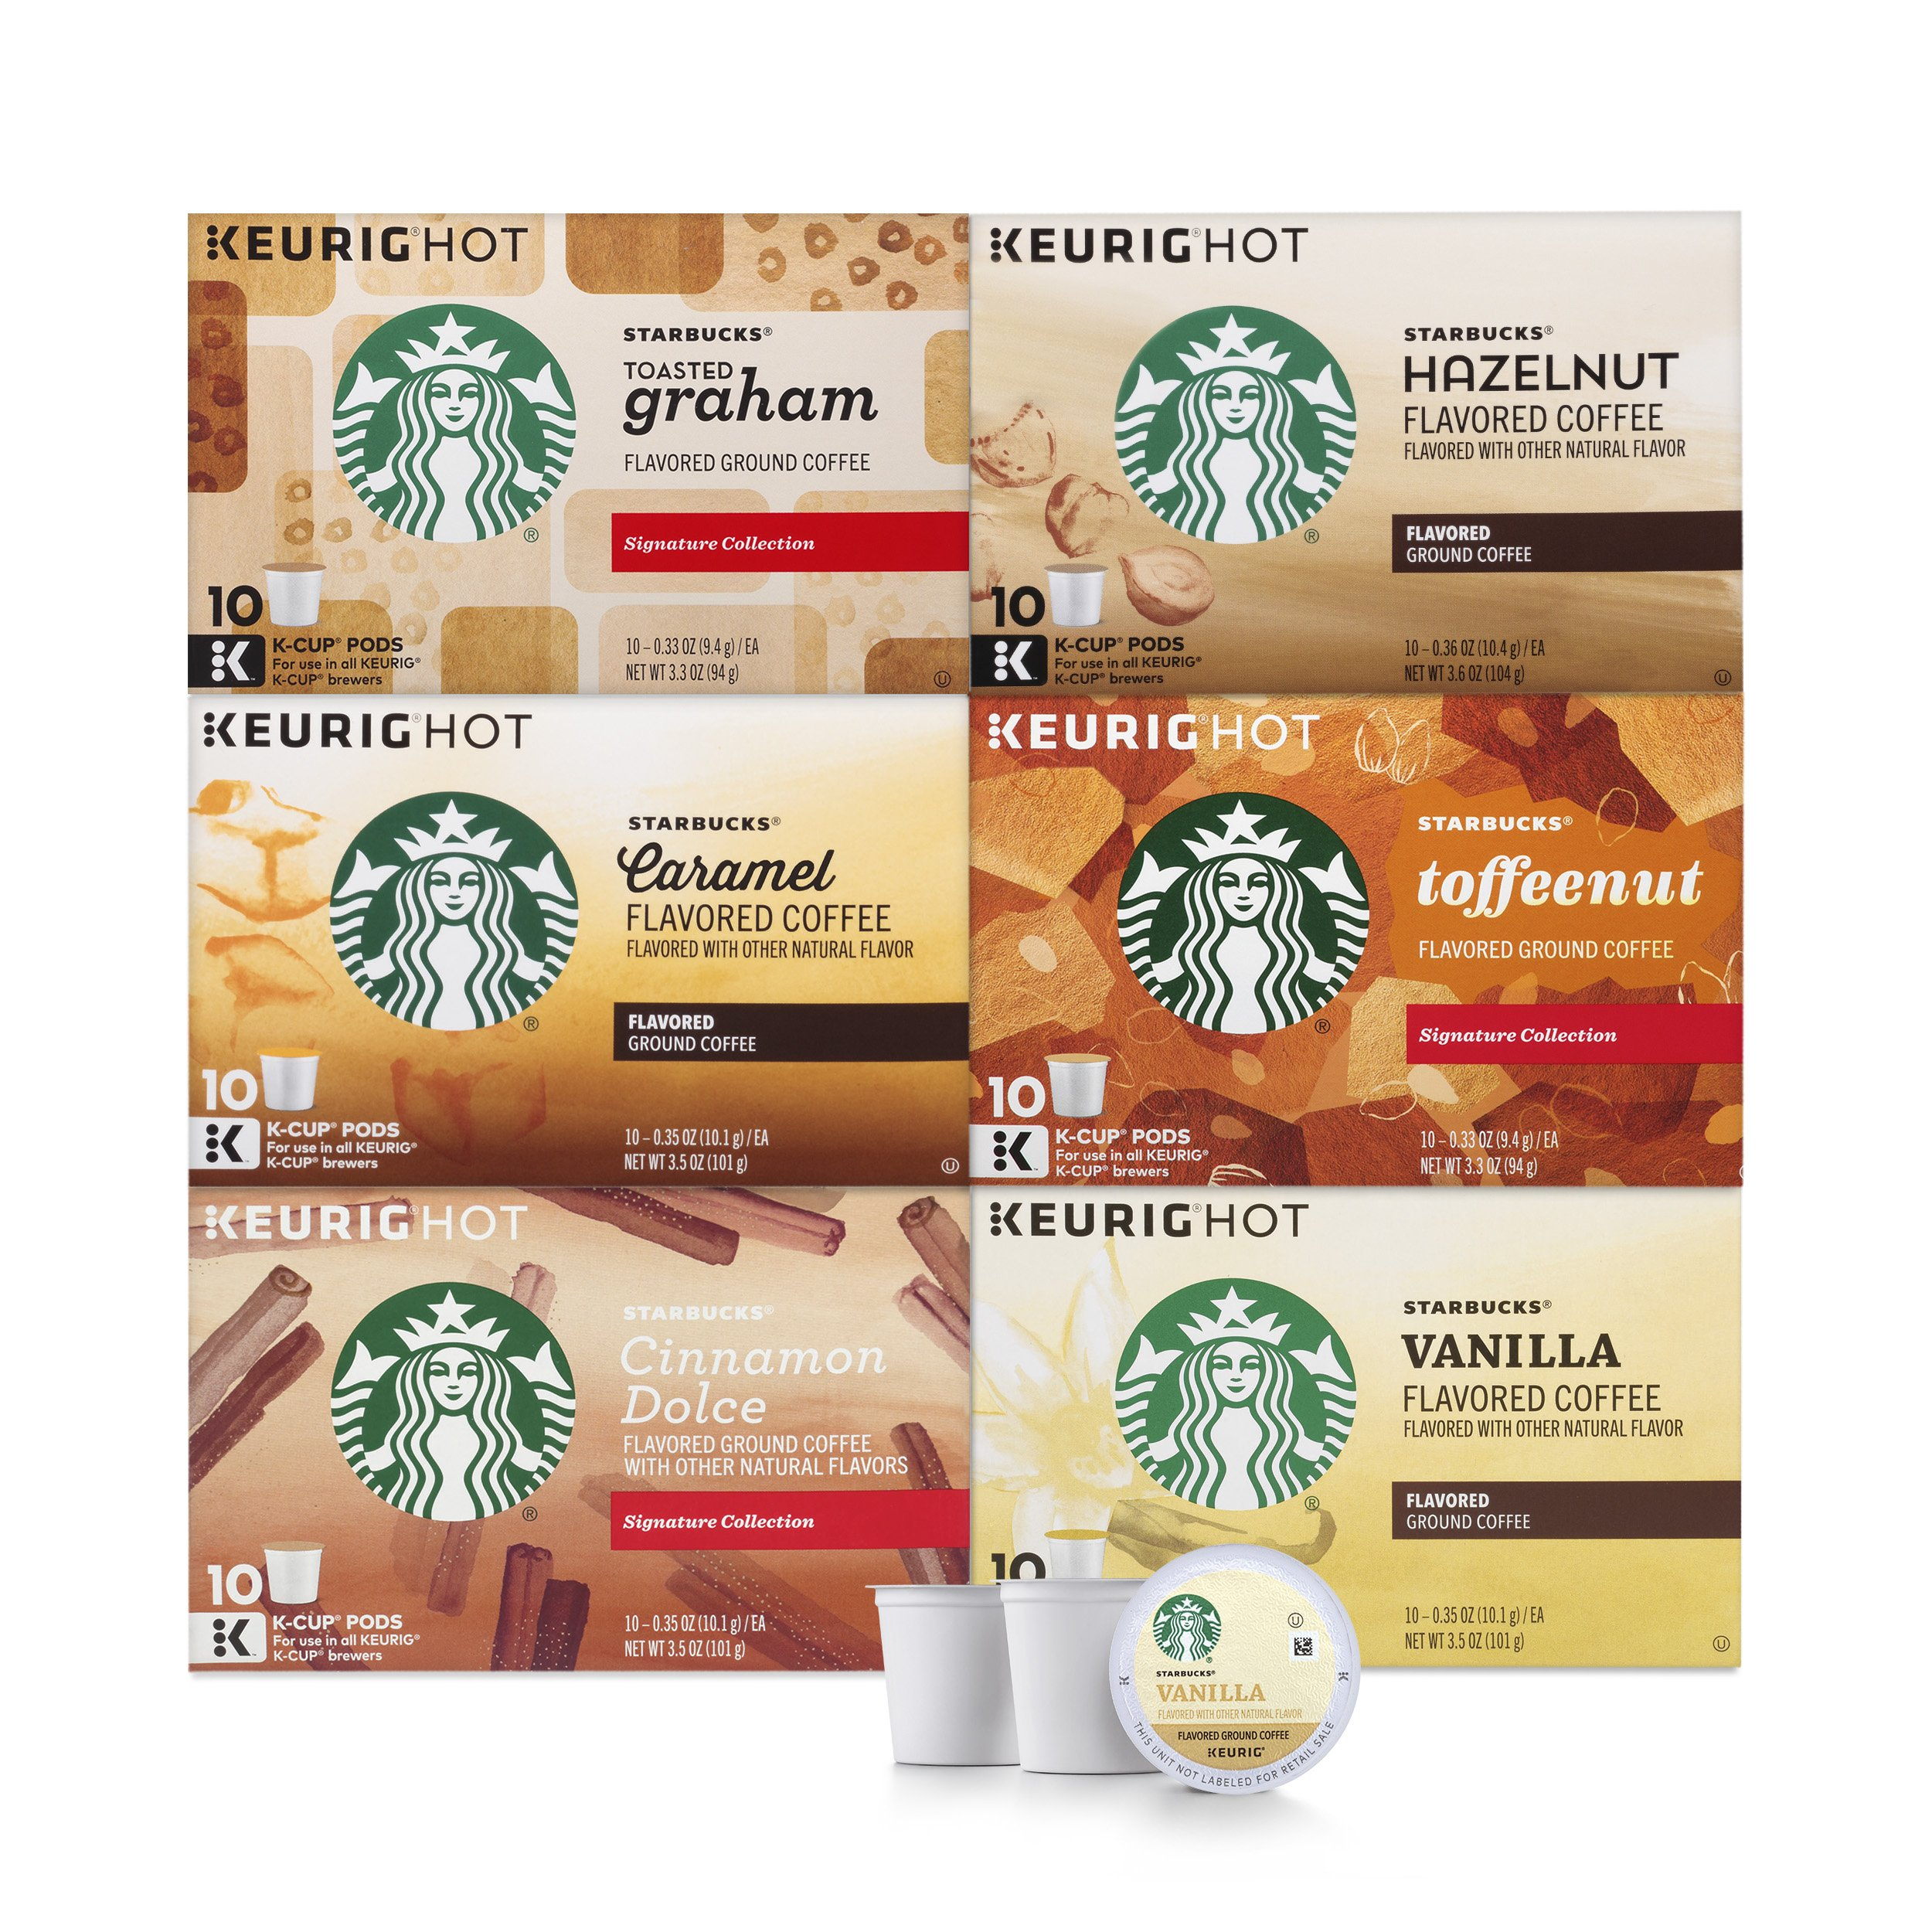 Starbucks Flavored Coffee K-Cup Variety Pack for Keurig Brewers, 6 boxes of 10 (60 total K-Cup pods), 60 Count by Starbucks